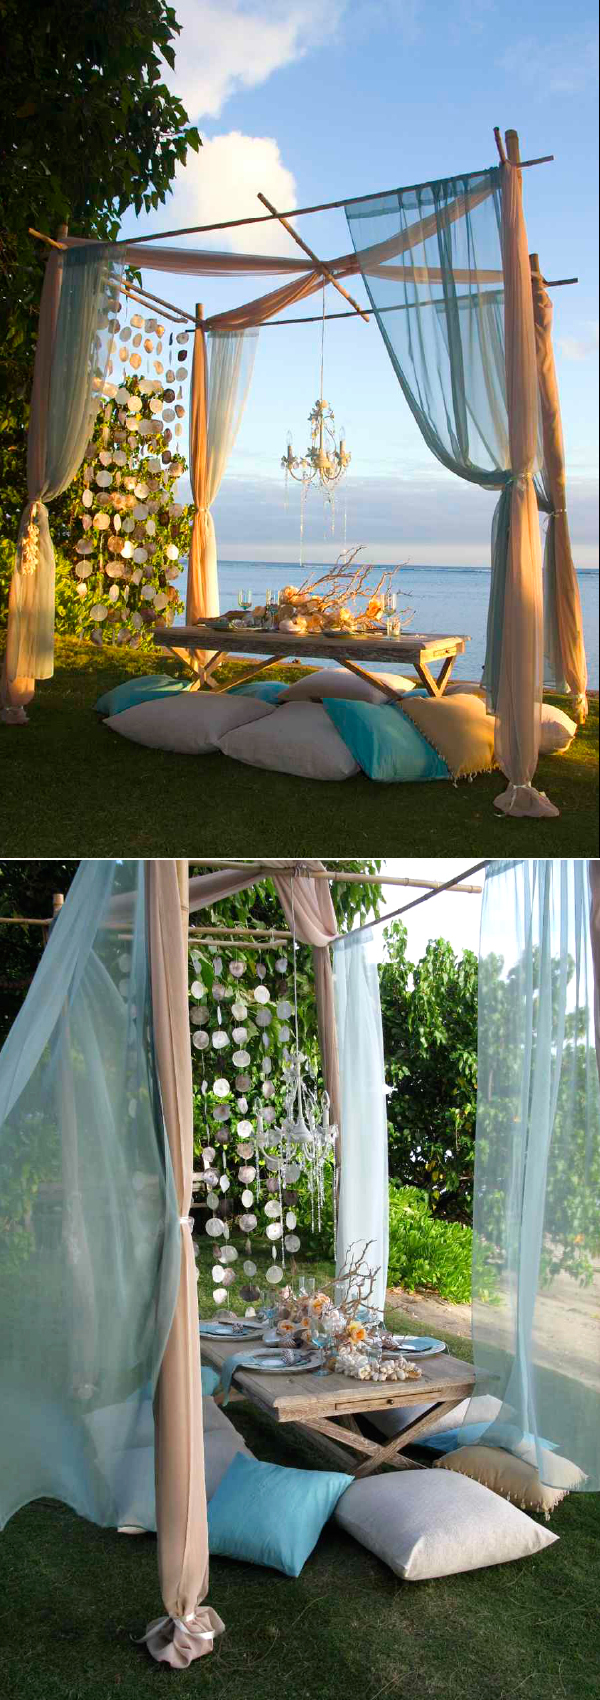 Image from Pacific Weddings Blog